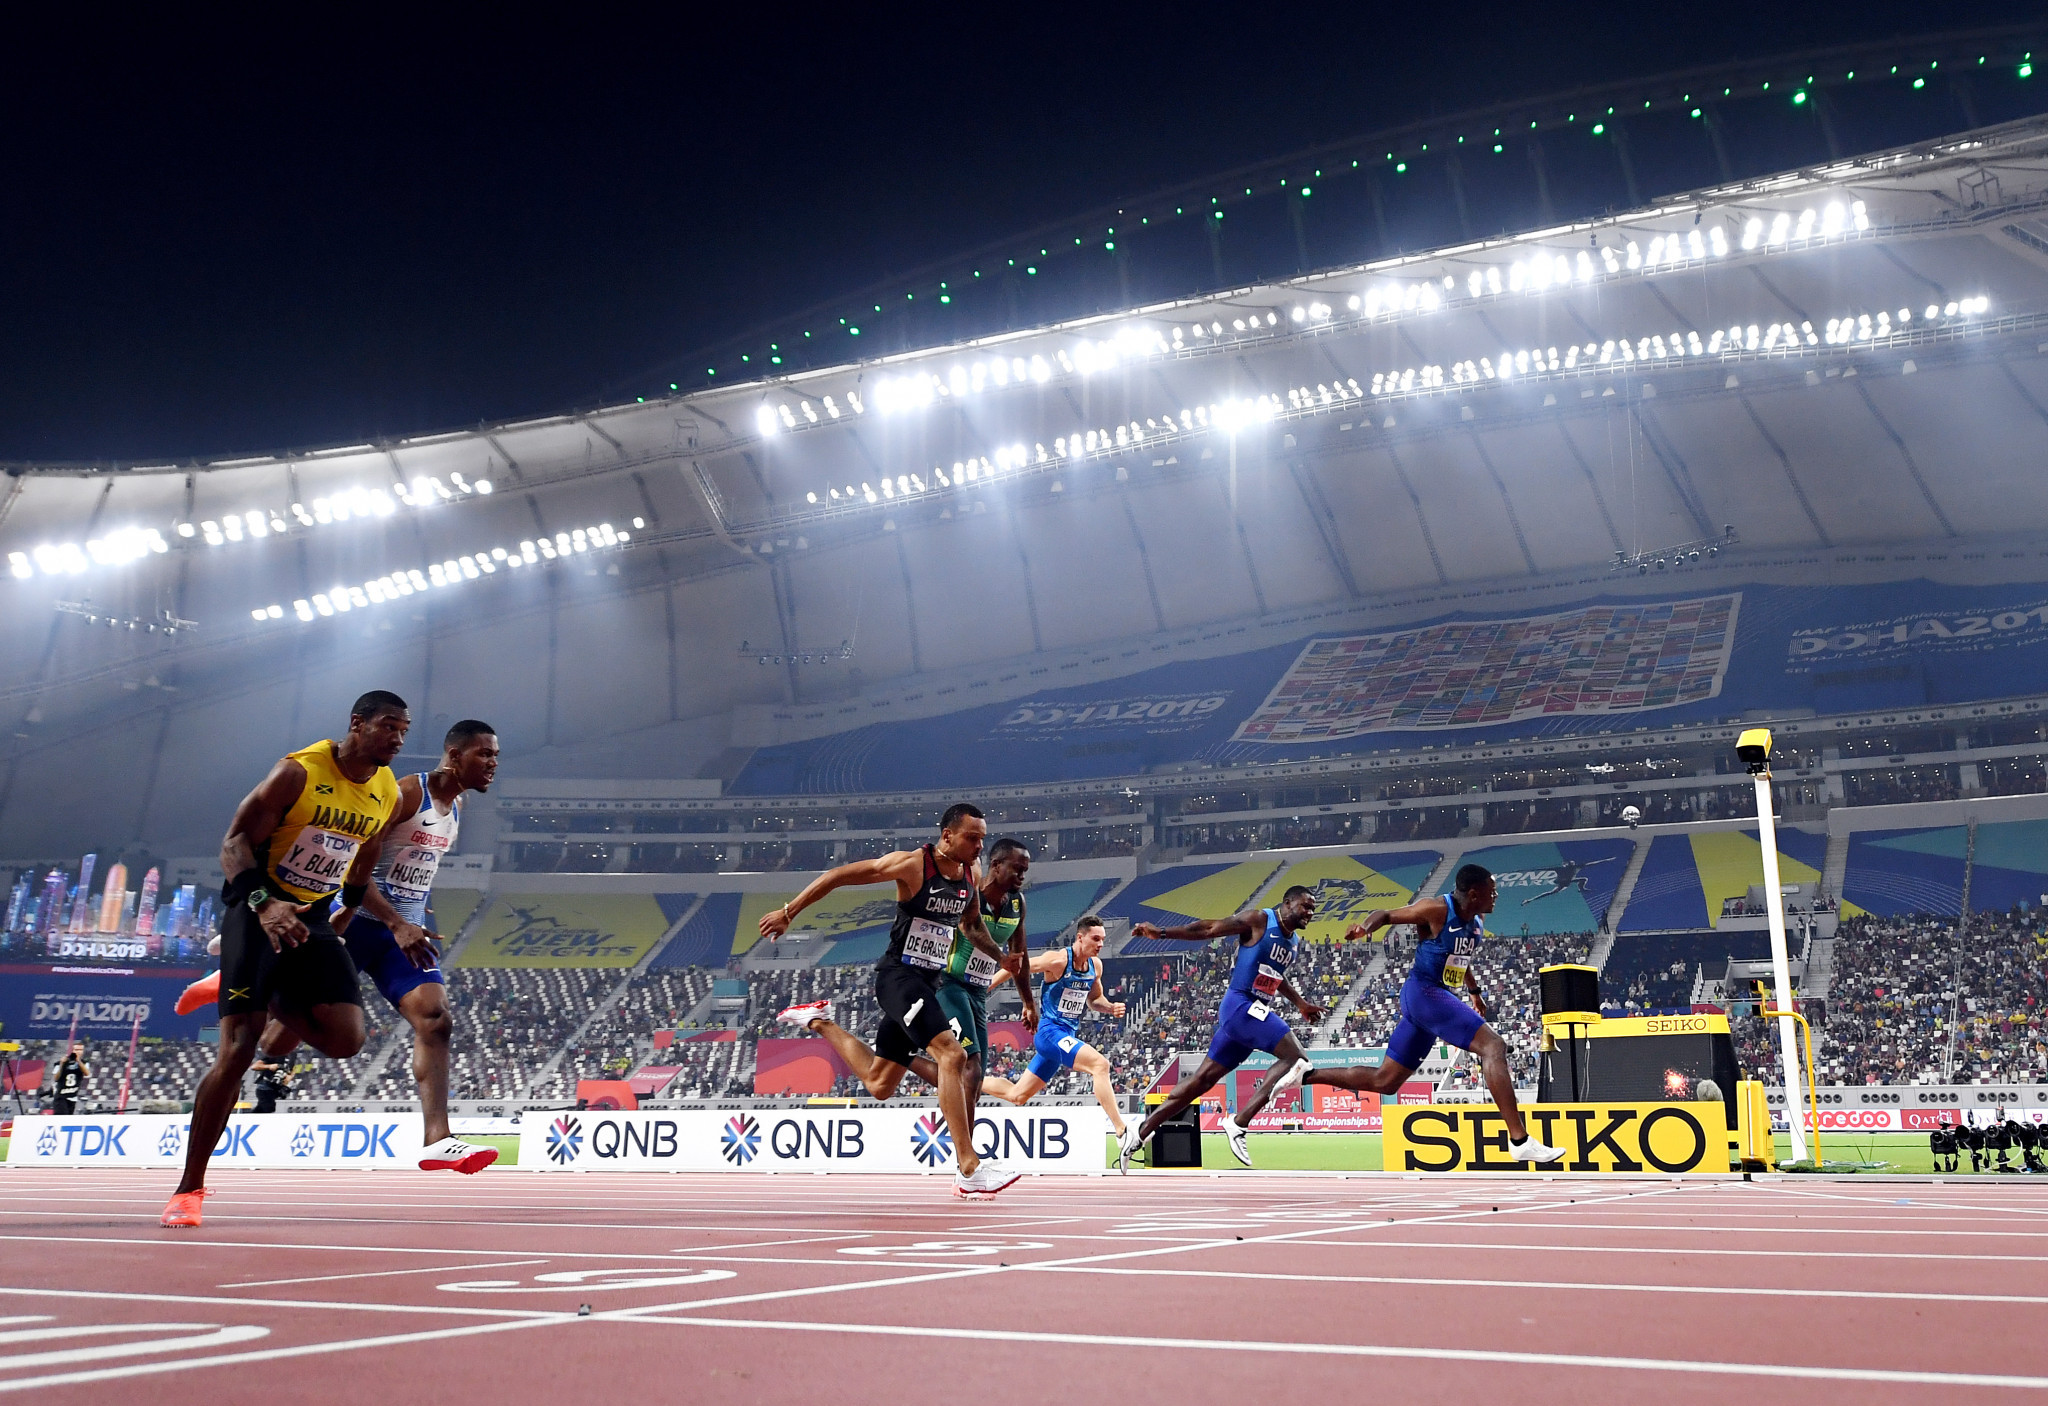 Athletics Integrity Unit monitoring betting patterns at IAAF World Championships